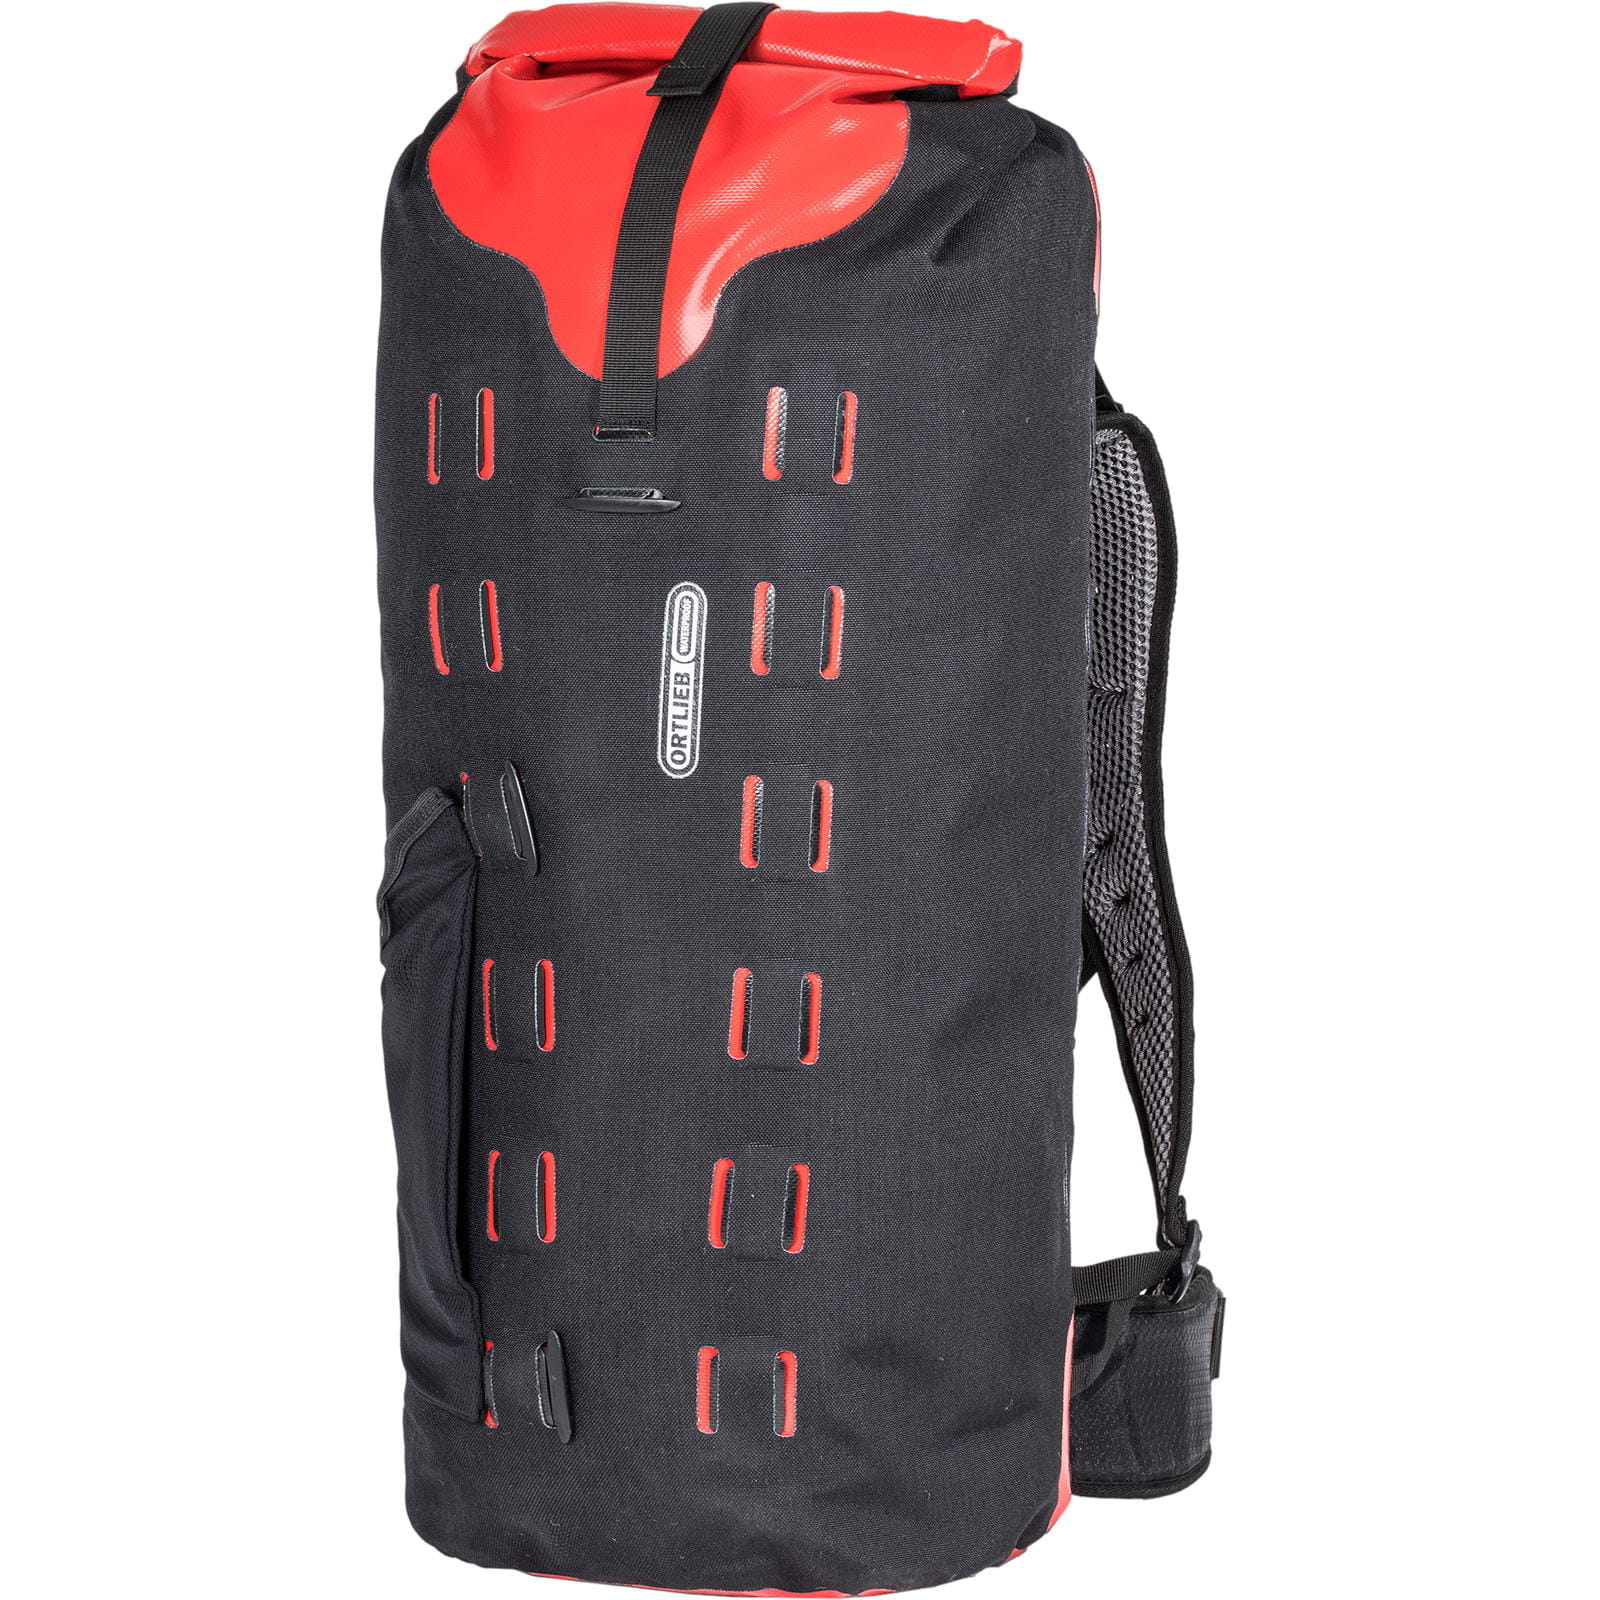 Ortlieb Gear-Pack 32 - Rucksack-Packsack-Kombination black-red - Bild 3